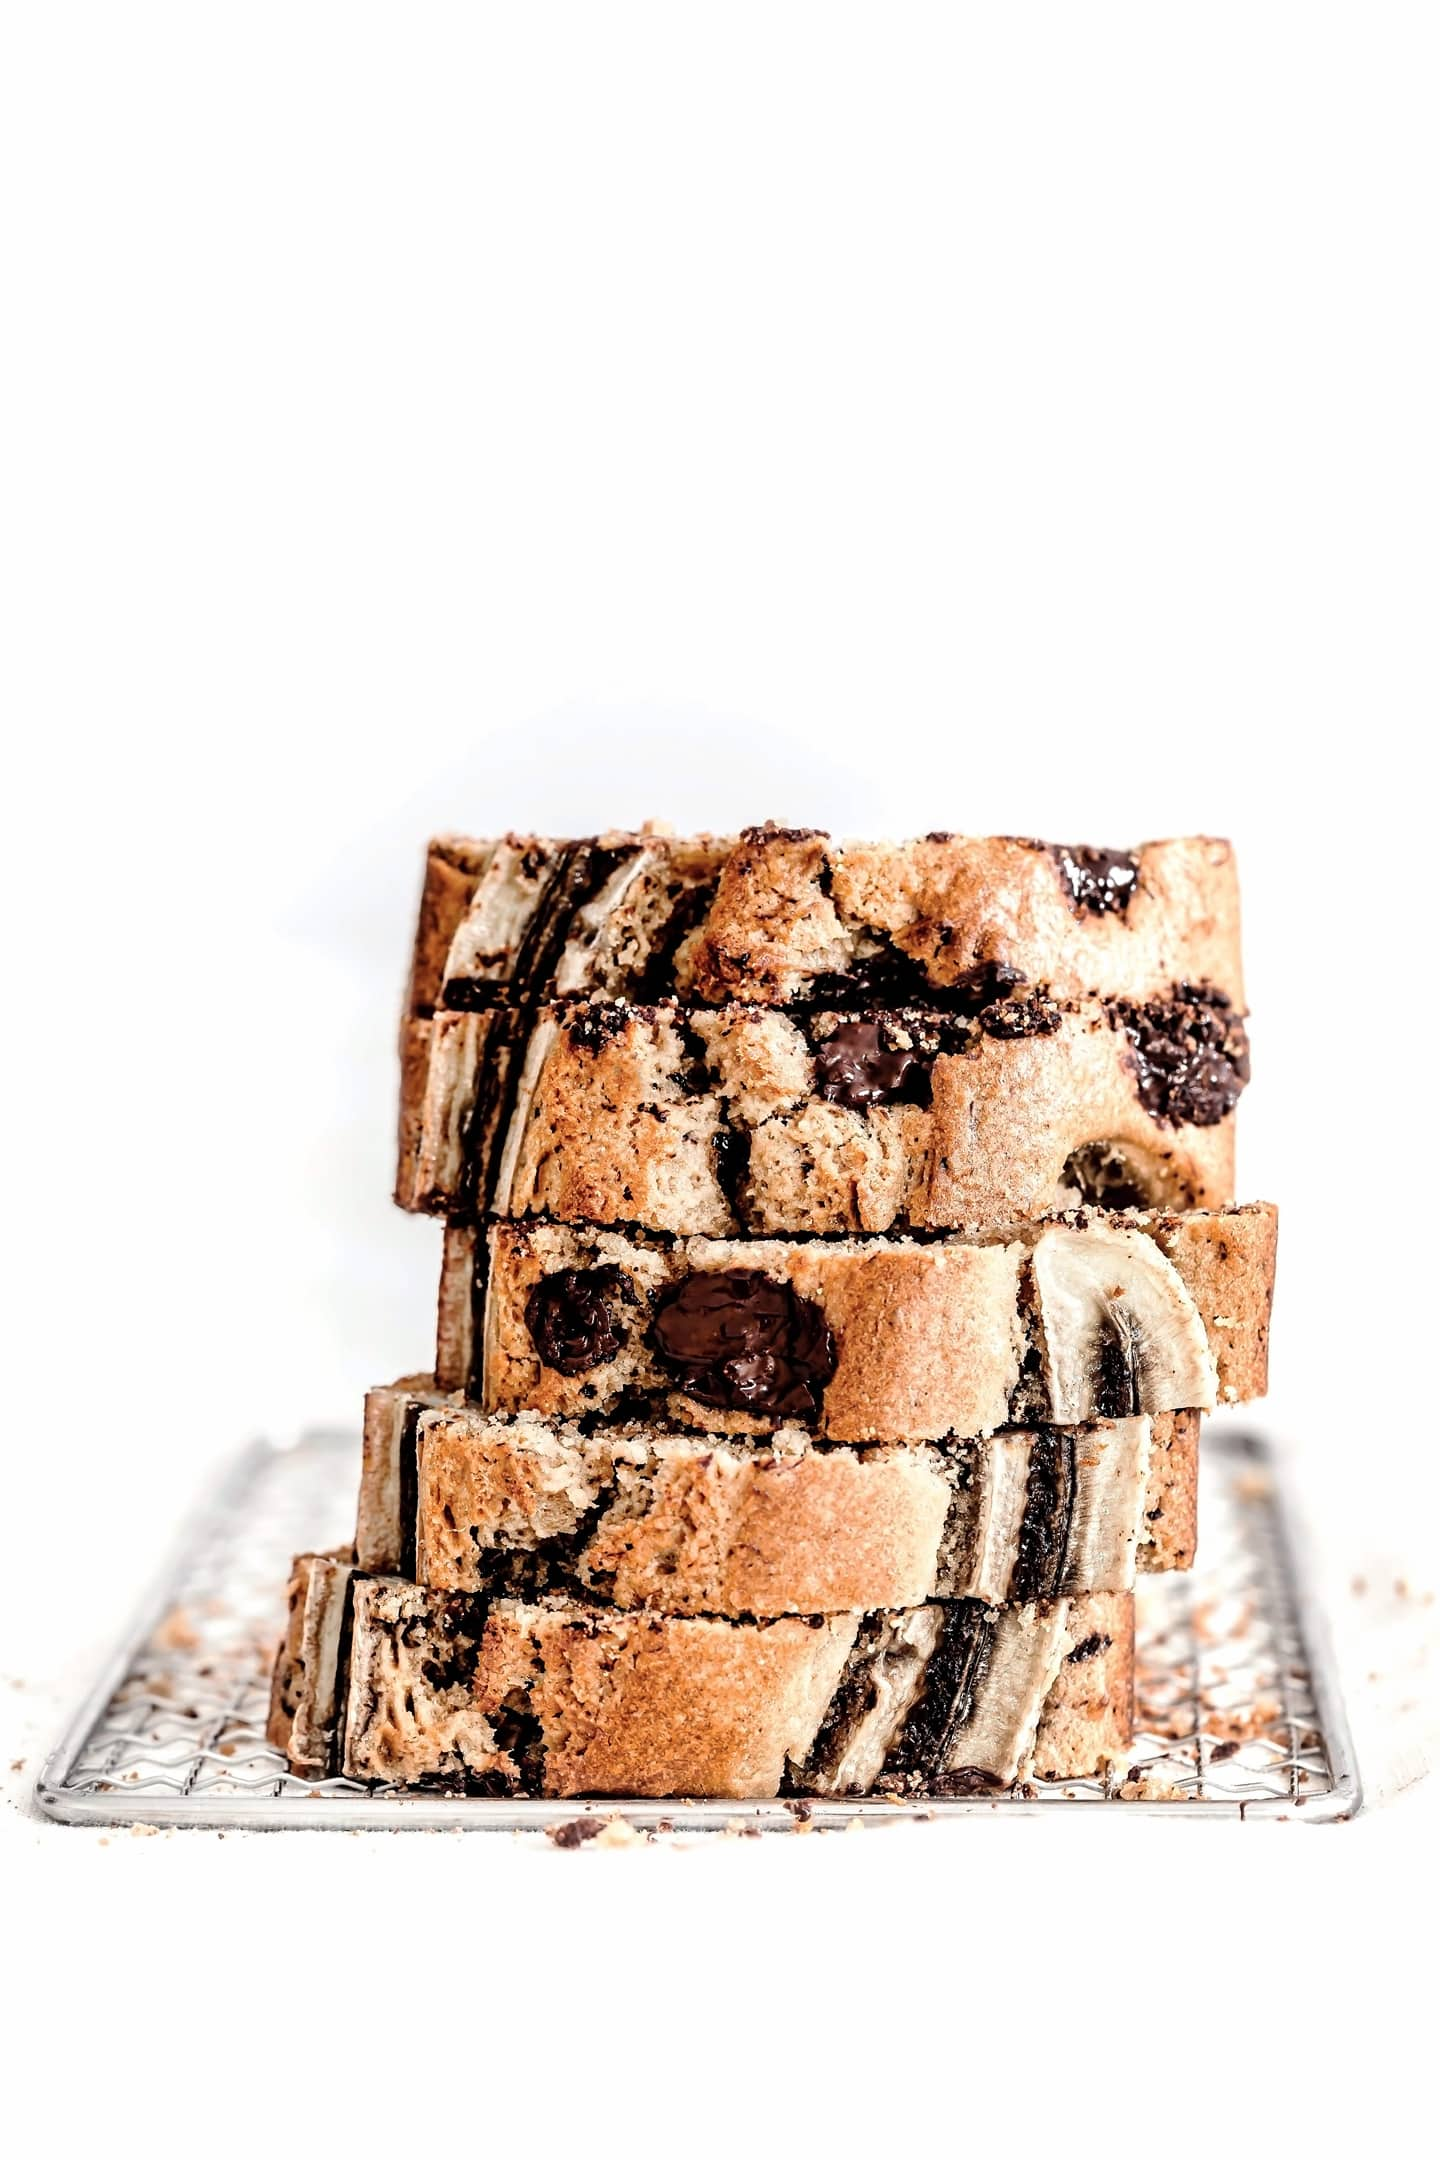 Best banana bread recipe with chocolate chip